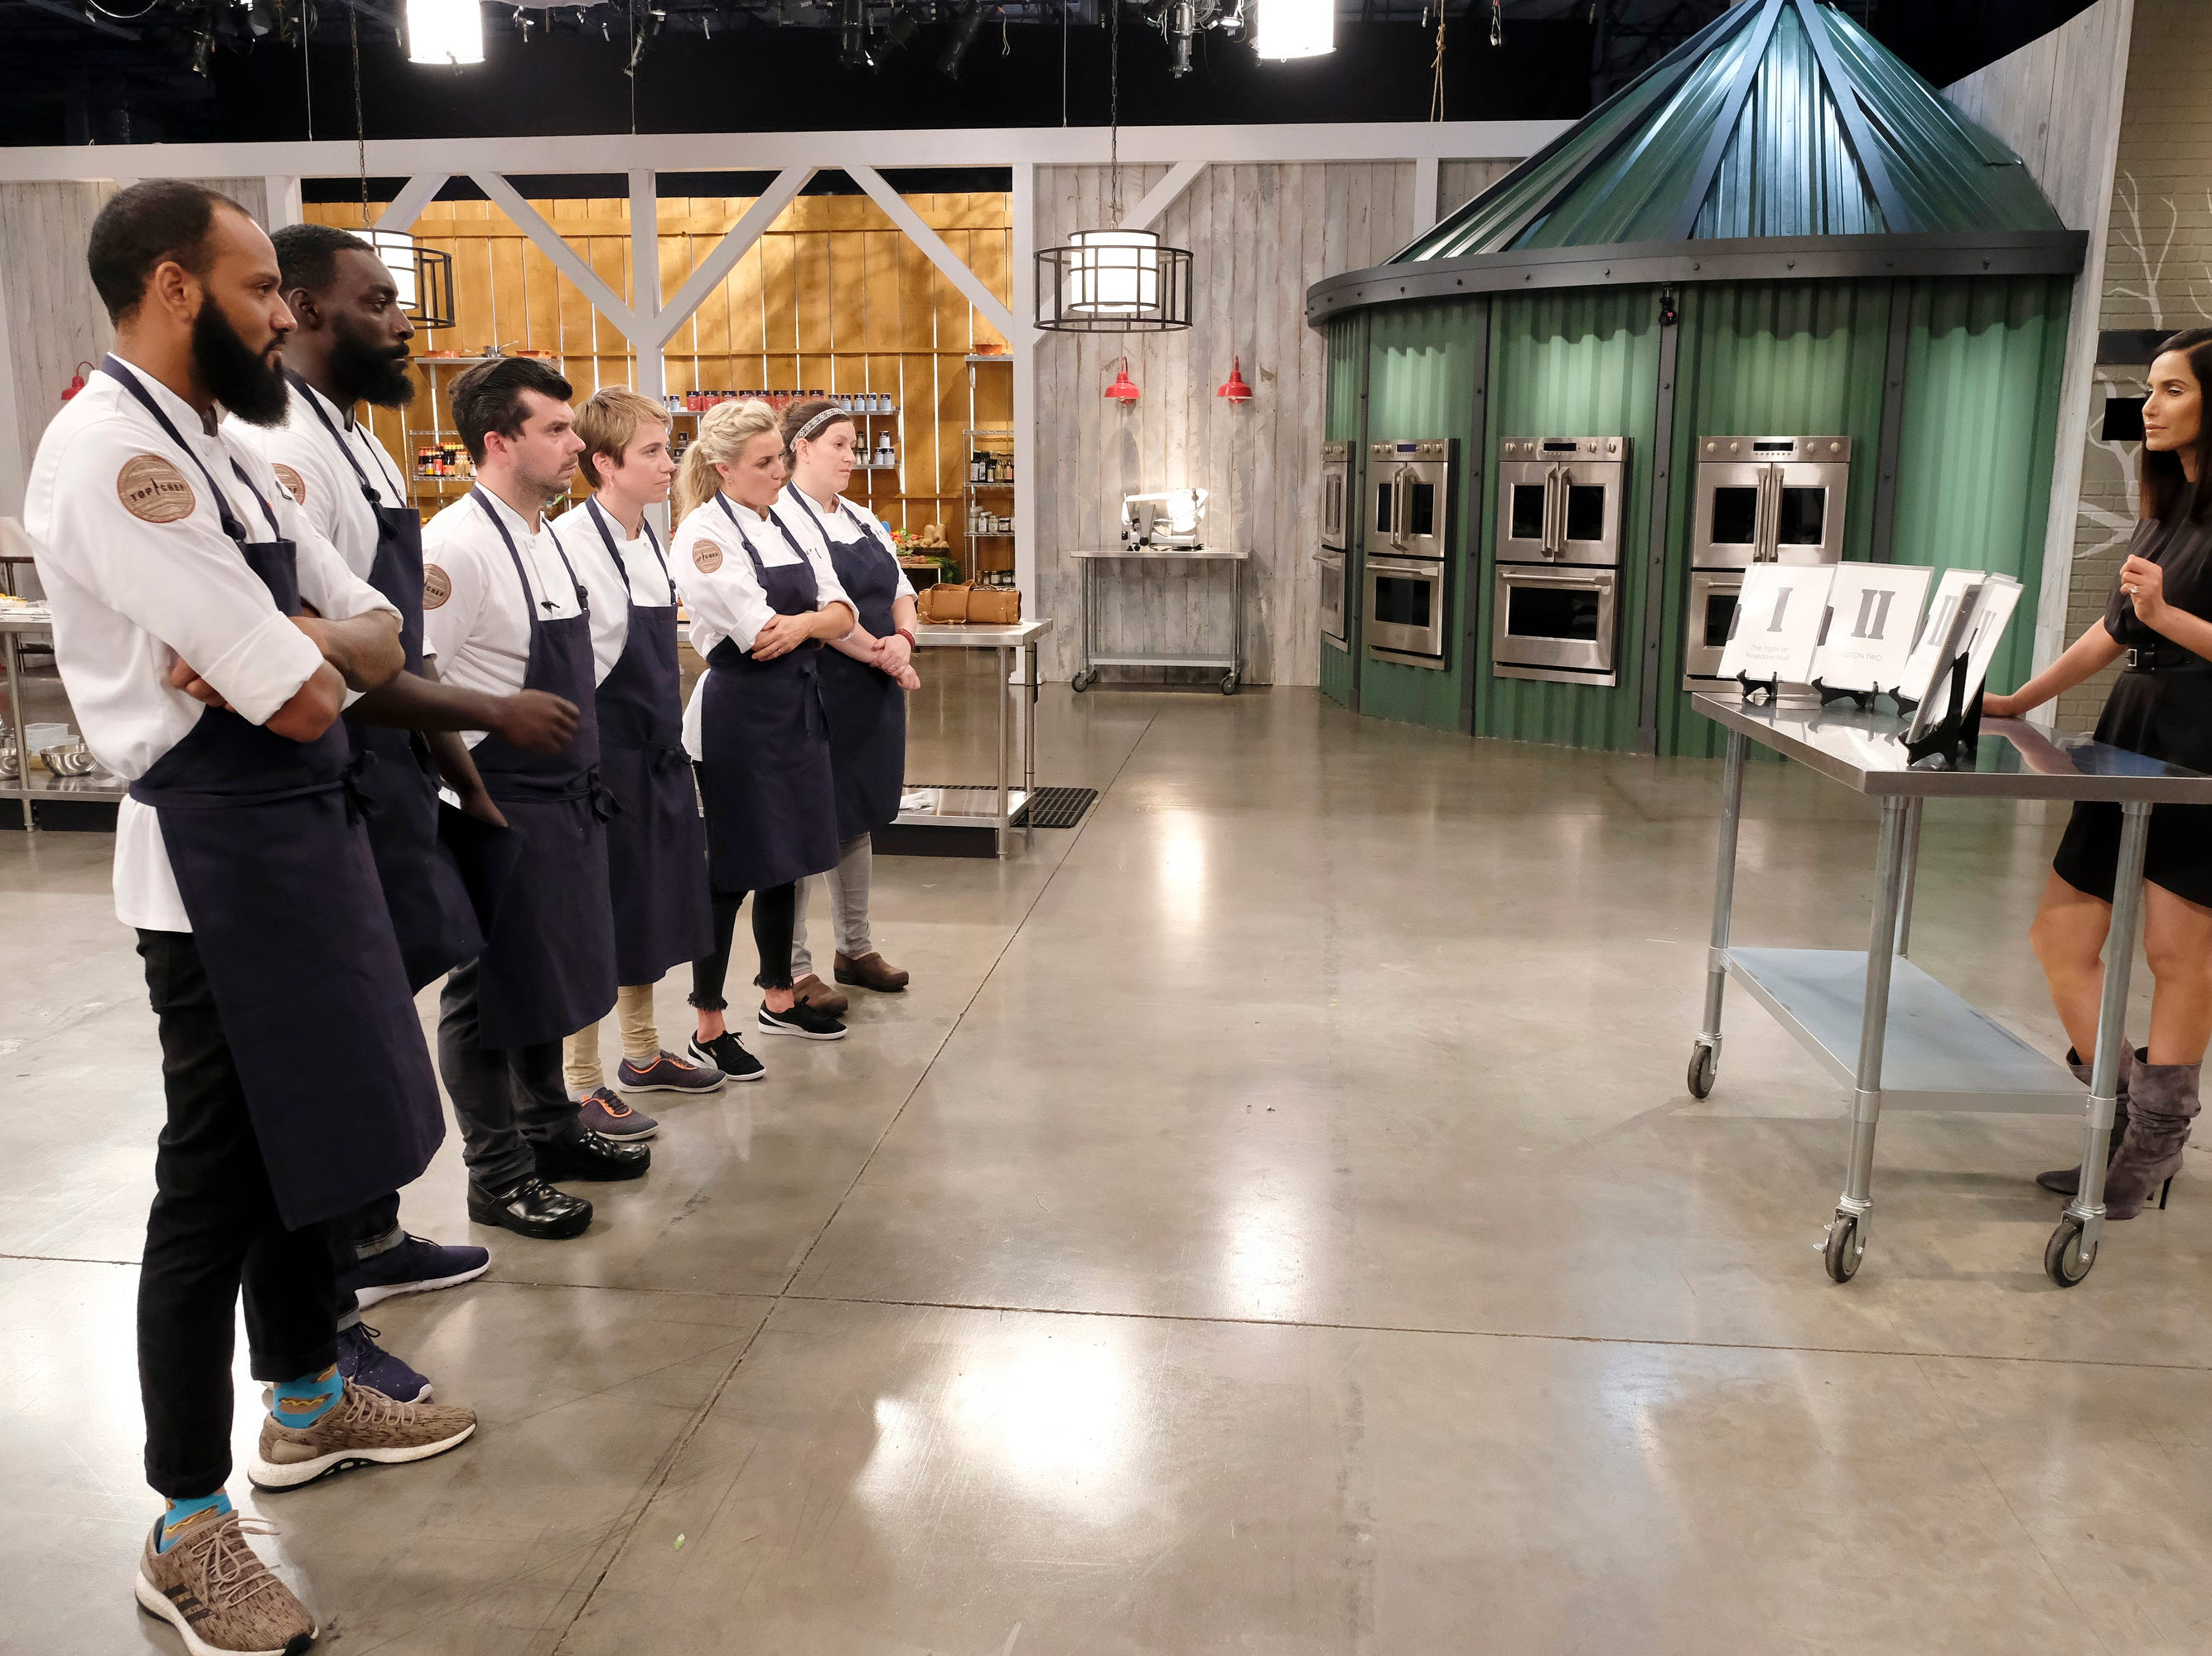 (From left to right): Contestants  Justin Sutherland, Eric Adjepong, Eddie Konrad, Adrienne Wright, Kelsey Barnard and Sara Bradley get challenge instructions from host Padma Lakshmi on episode 11 of Bravo's 'Top Chef:' Kentucky season.